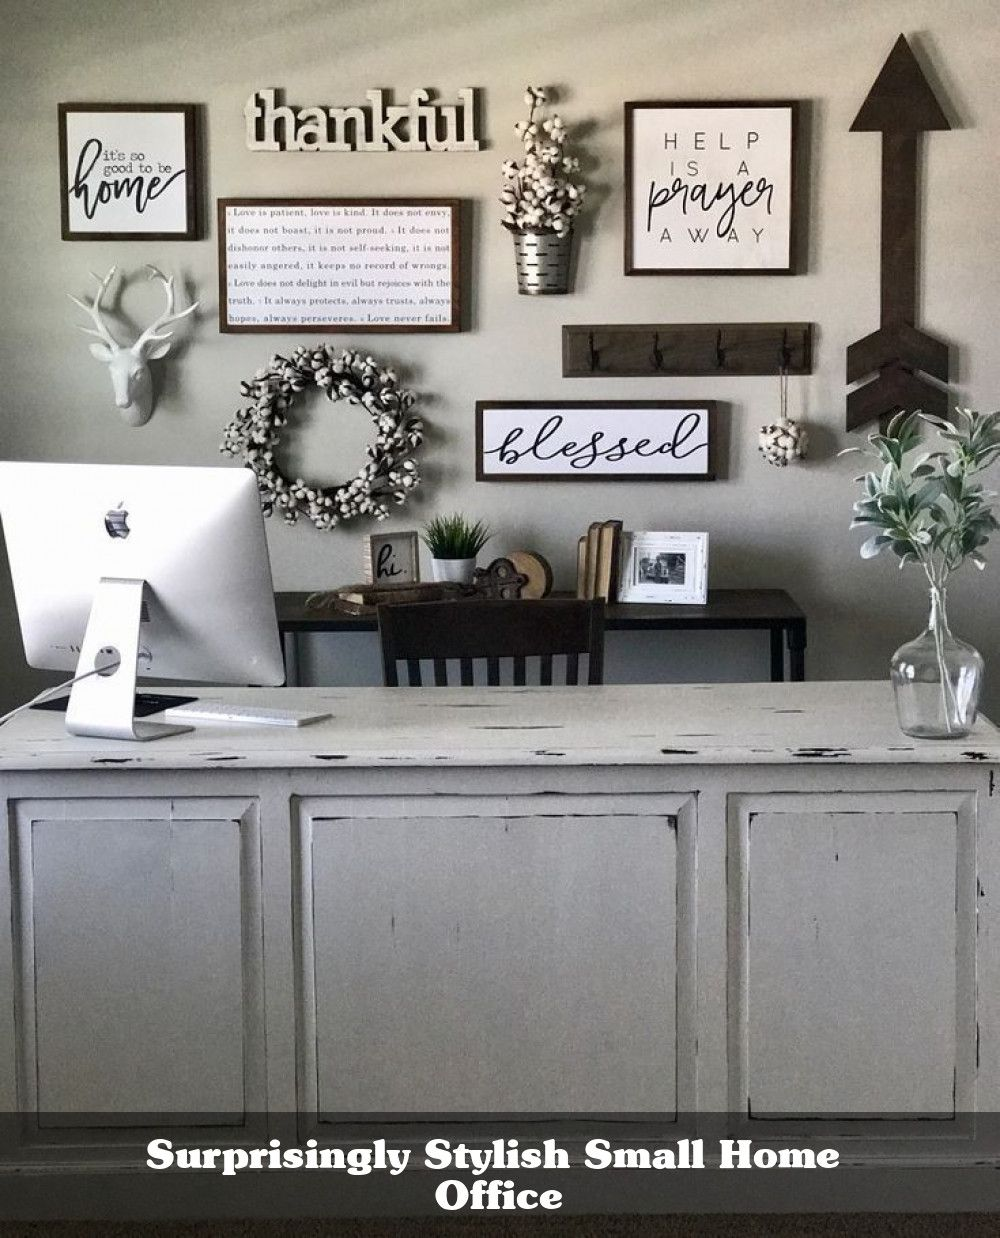 30 Cool Farmhouse Decorating Ideas For Your Home Office In 2021 Farmhouse Office Decor Farm House Living Room Room Wall Decor